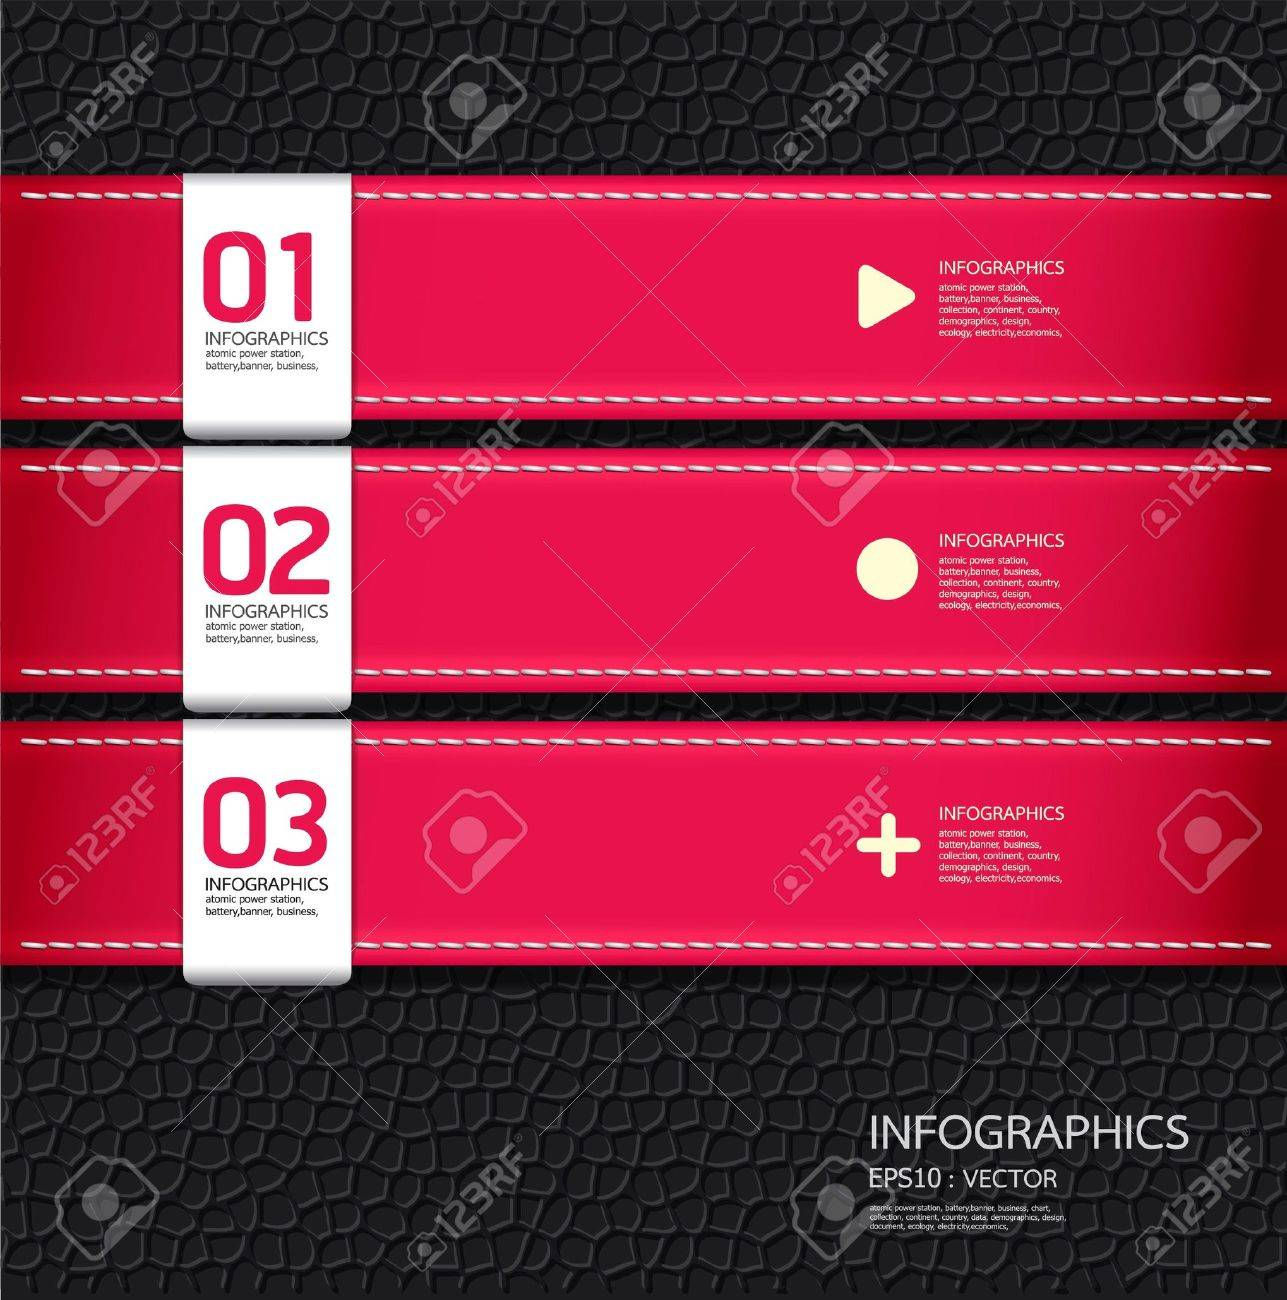 Leather pink color Design template    can be used for infographics   numbered banners   horizontal cutout lines   graphic or website layout vector Stock Vector - 15534087